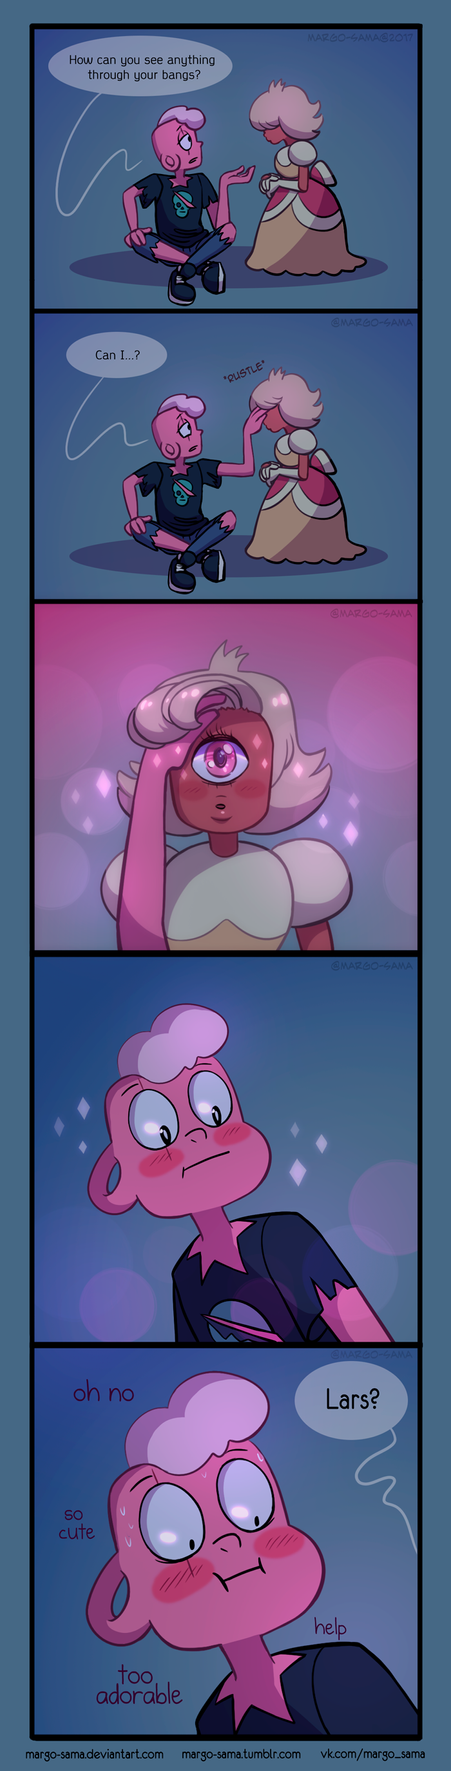 [SU] The Secret Weapon by Margo-sama